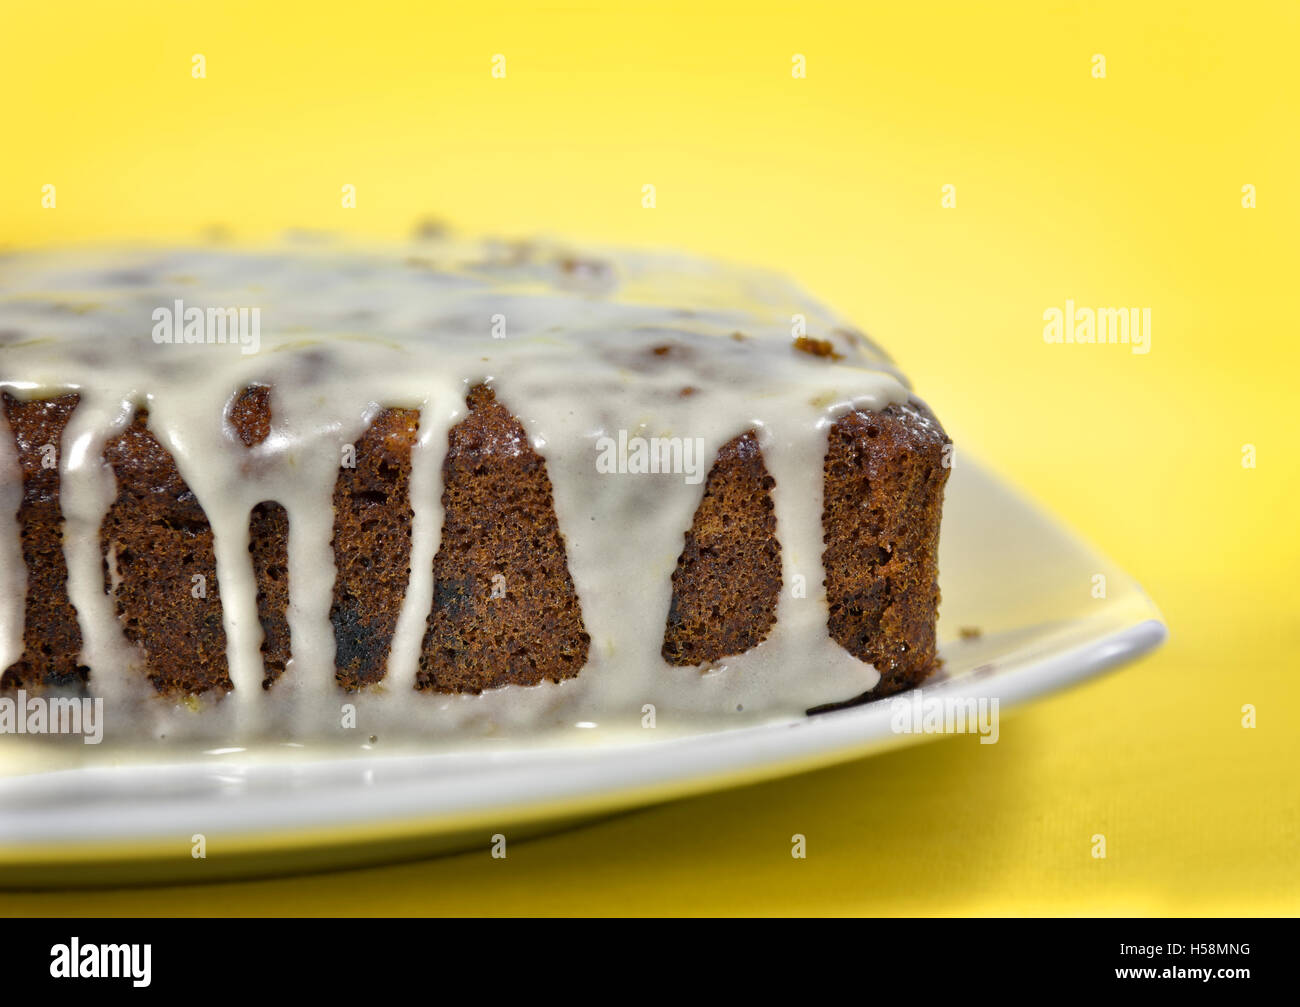 Home made carrot cake with icing against a yellow background - Stock Image